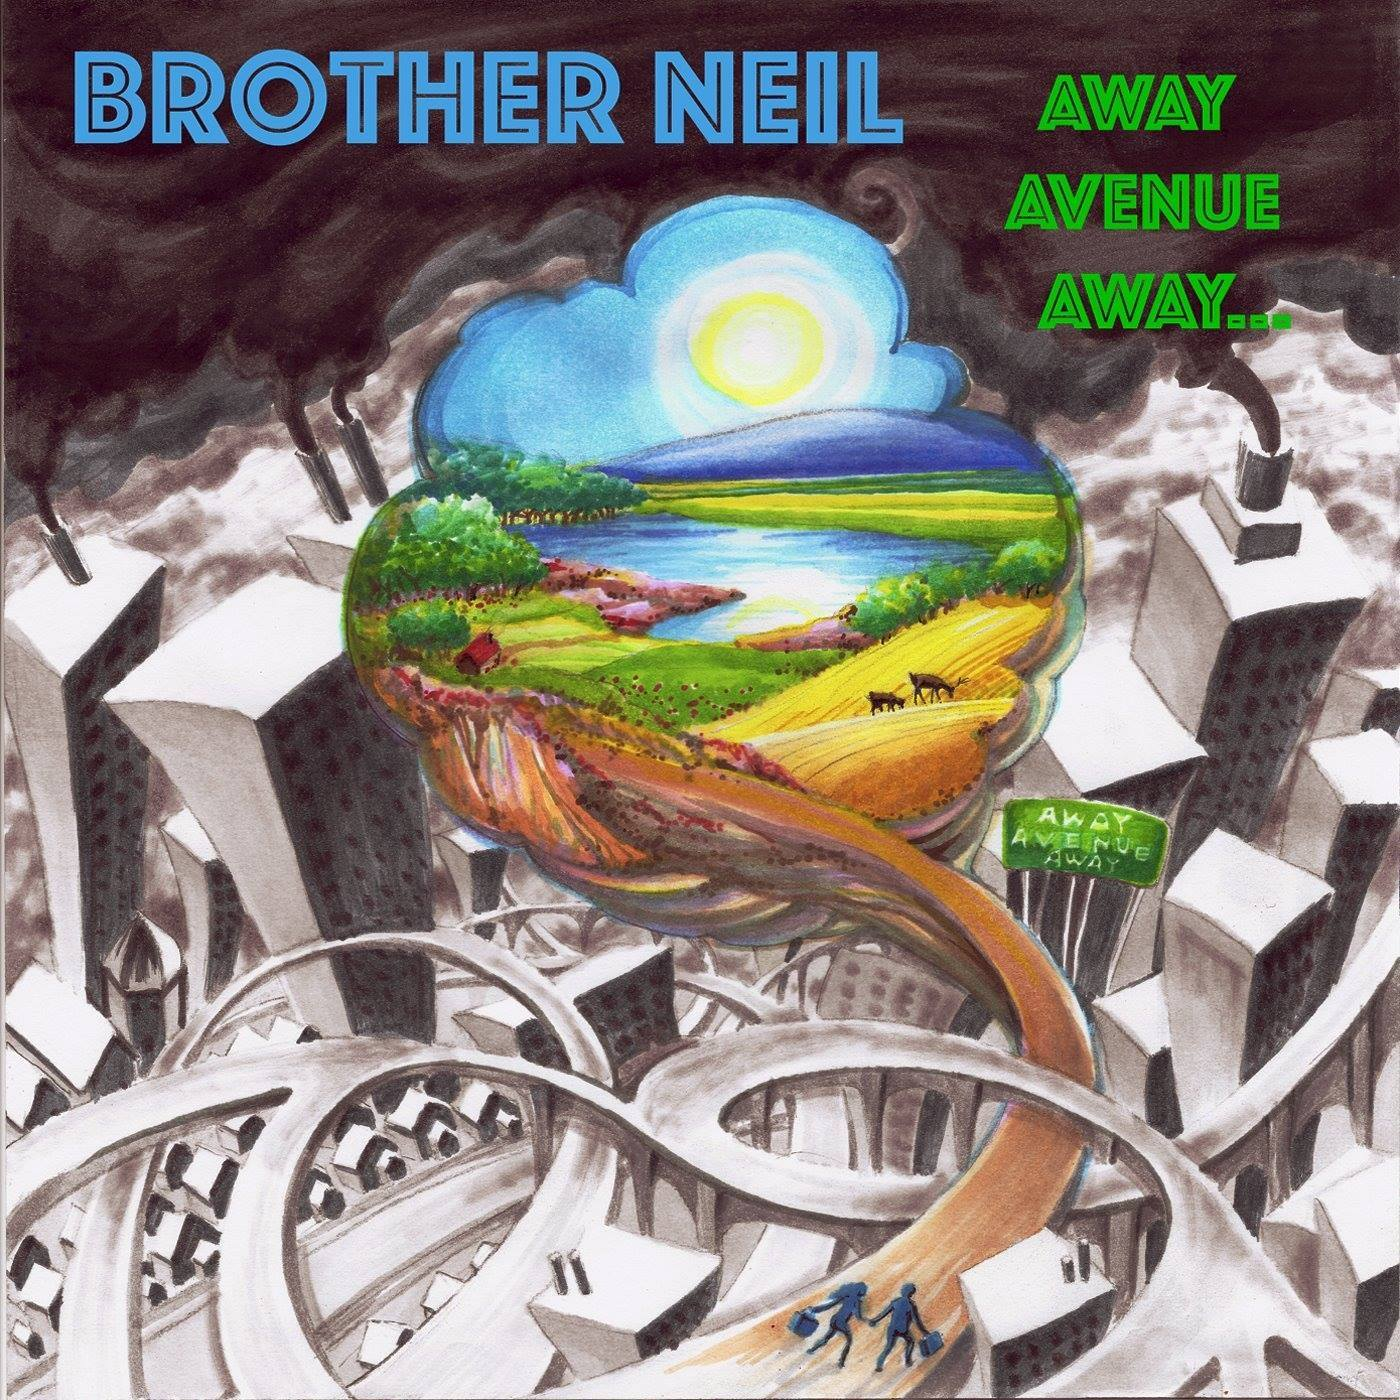 Brother Neil to release Away Avenue Away